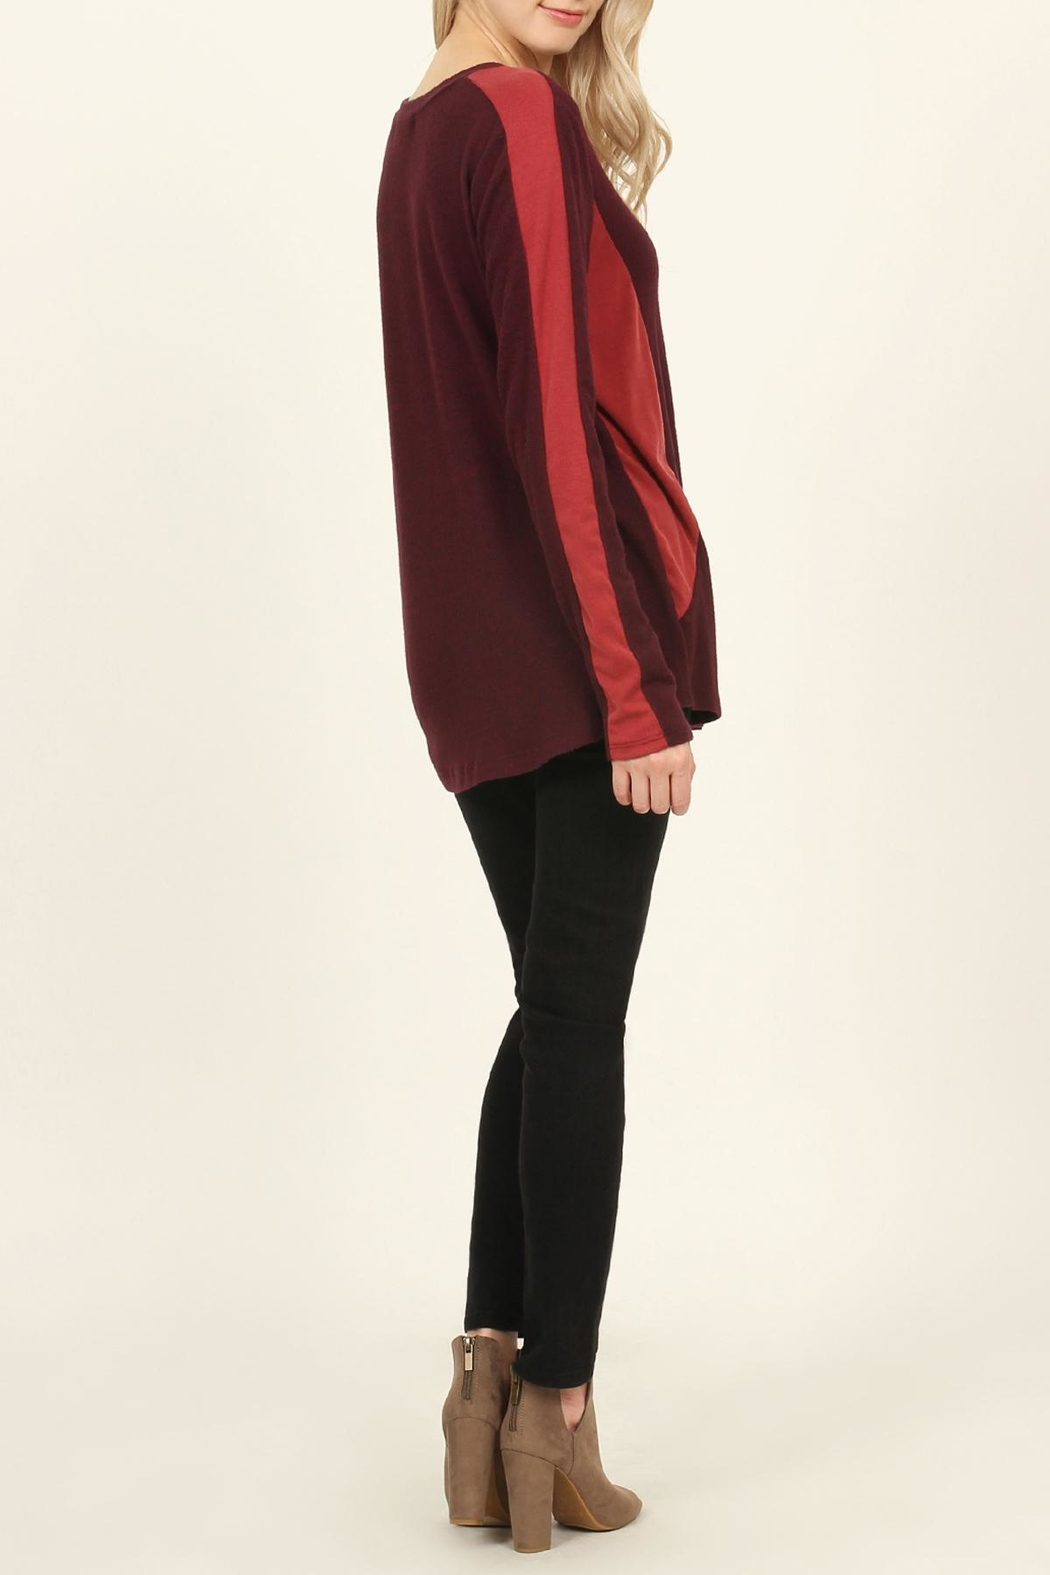 Riah Fashion Two-Tone-Side & Sleeve-Accented-Sweater - Front Full Image